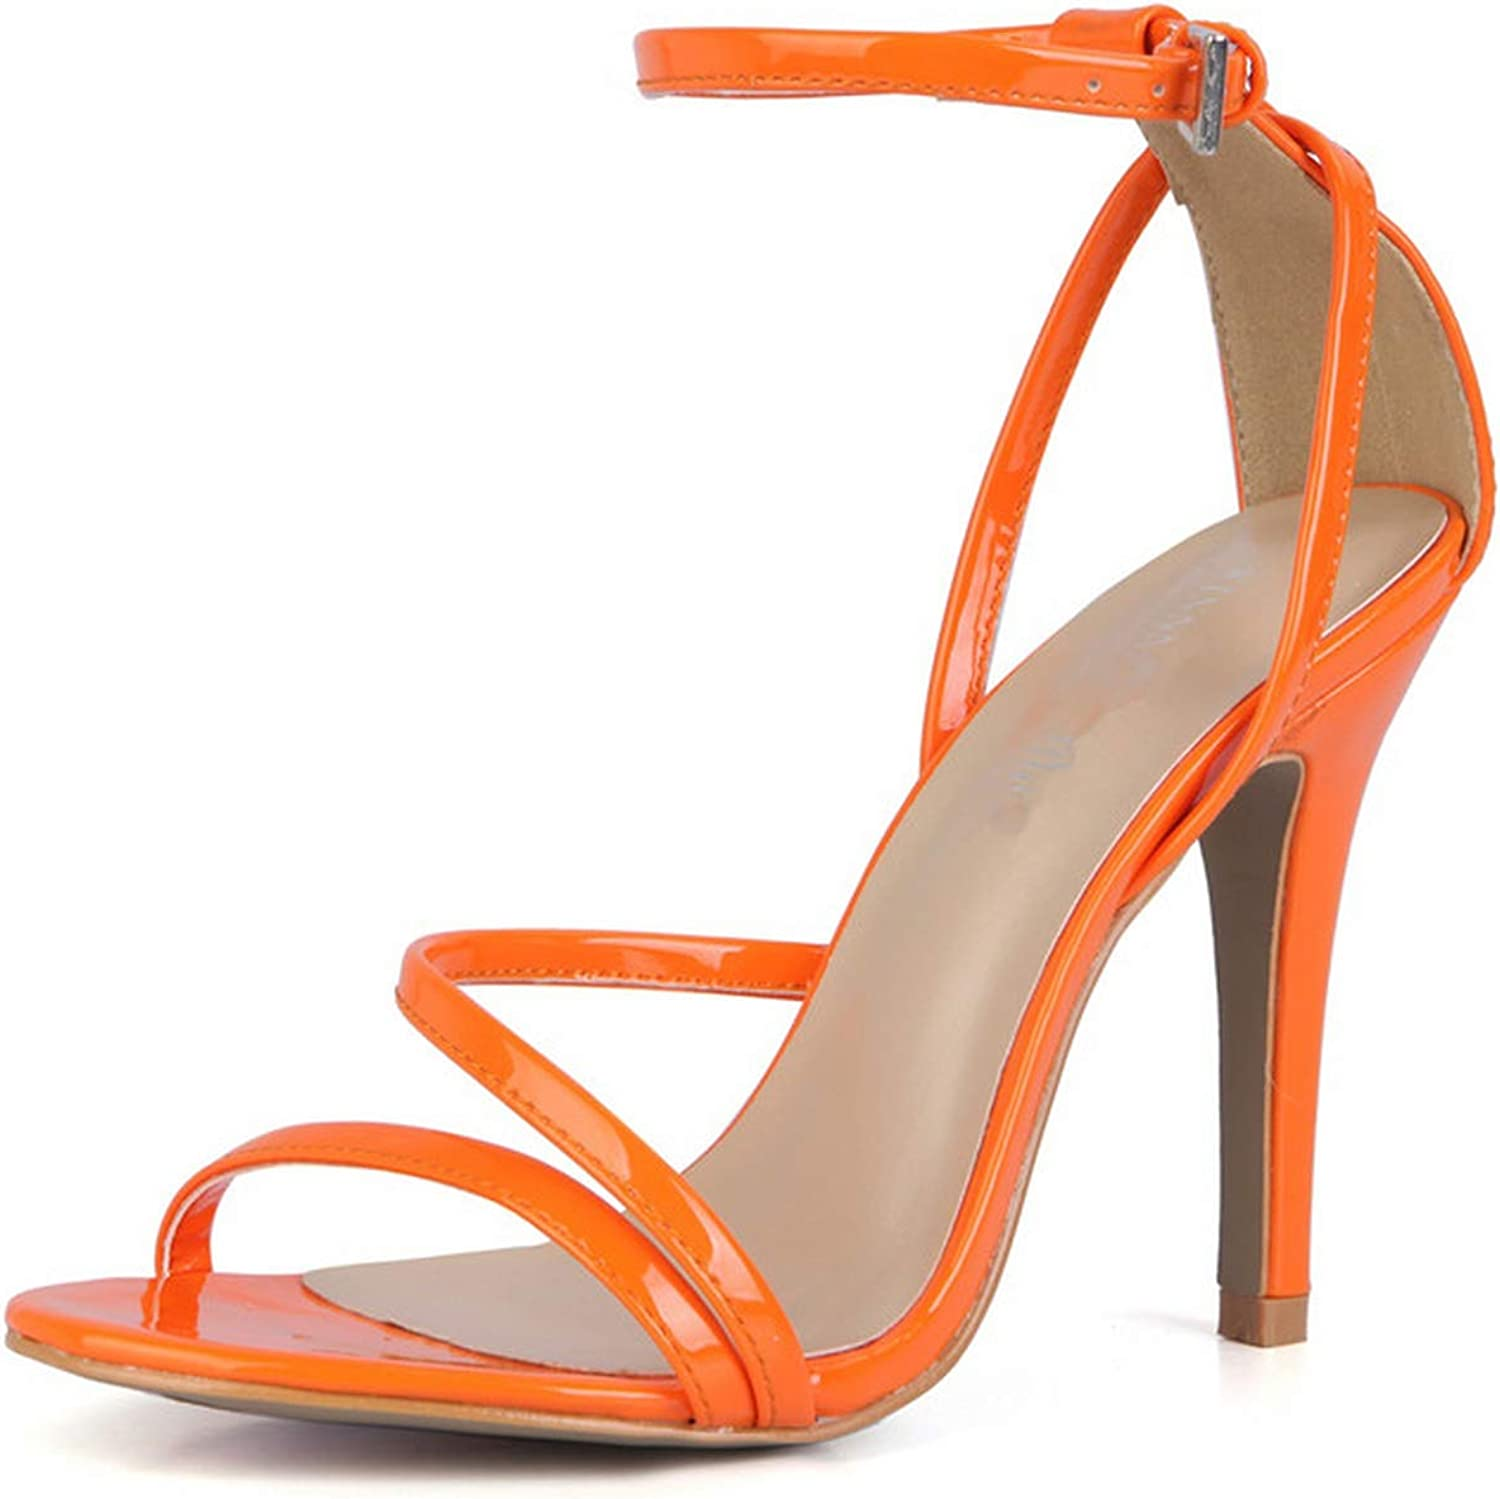 Private space shoes women Summer Stiletto Sexy Sandals 10cm Thin High-Heeled Buckle shoes Woman Patent Leather Pumps